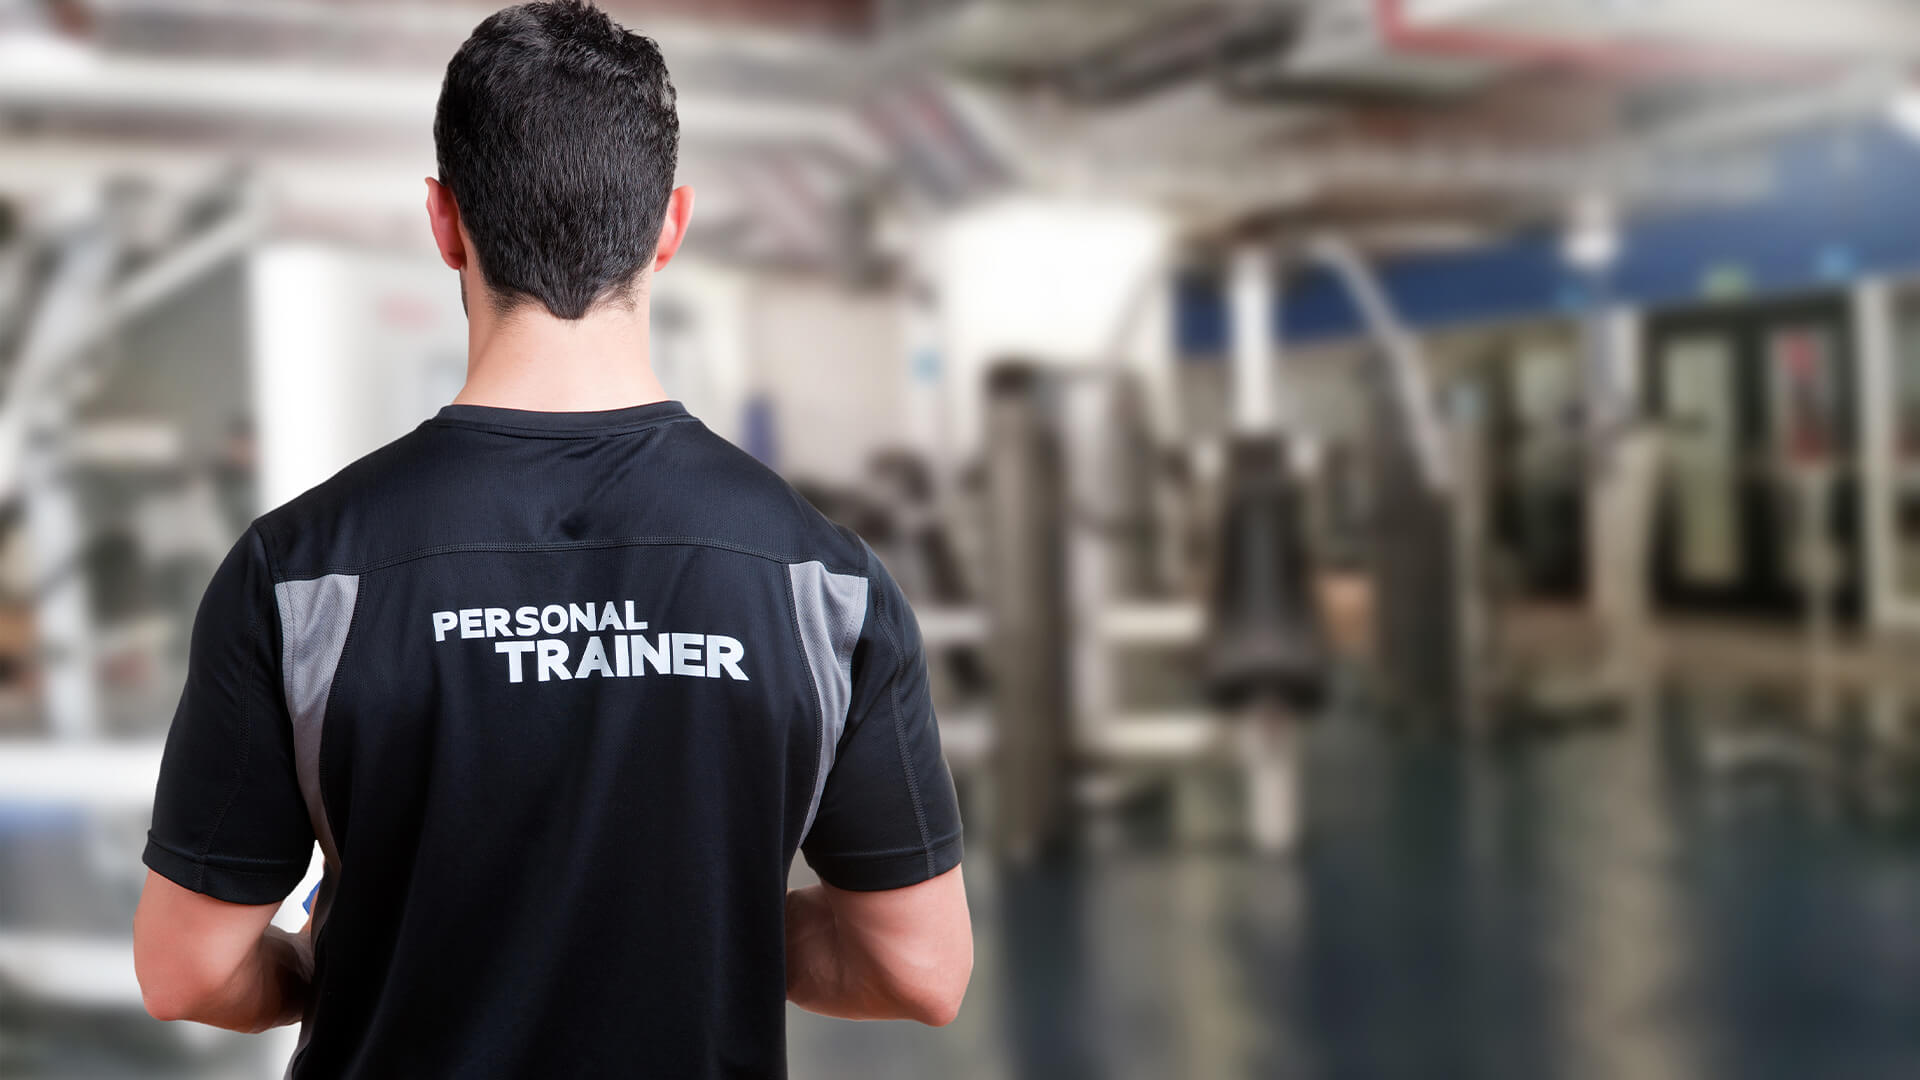 4 Reasons to Consider Starting a Career as a Personal Trainer